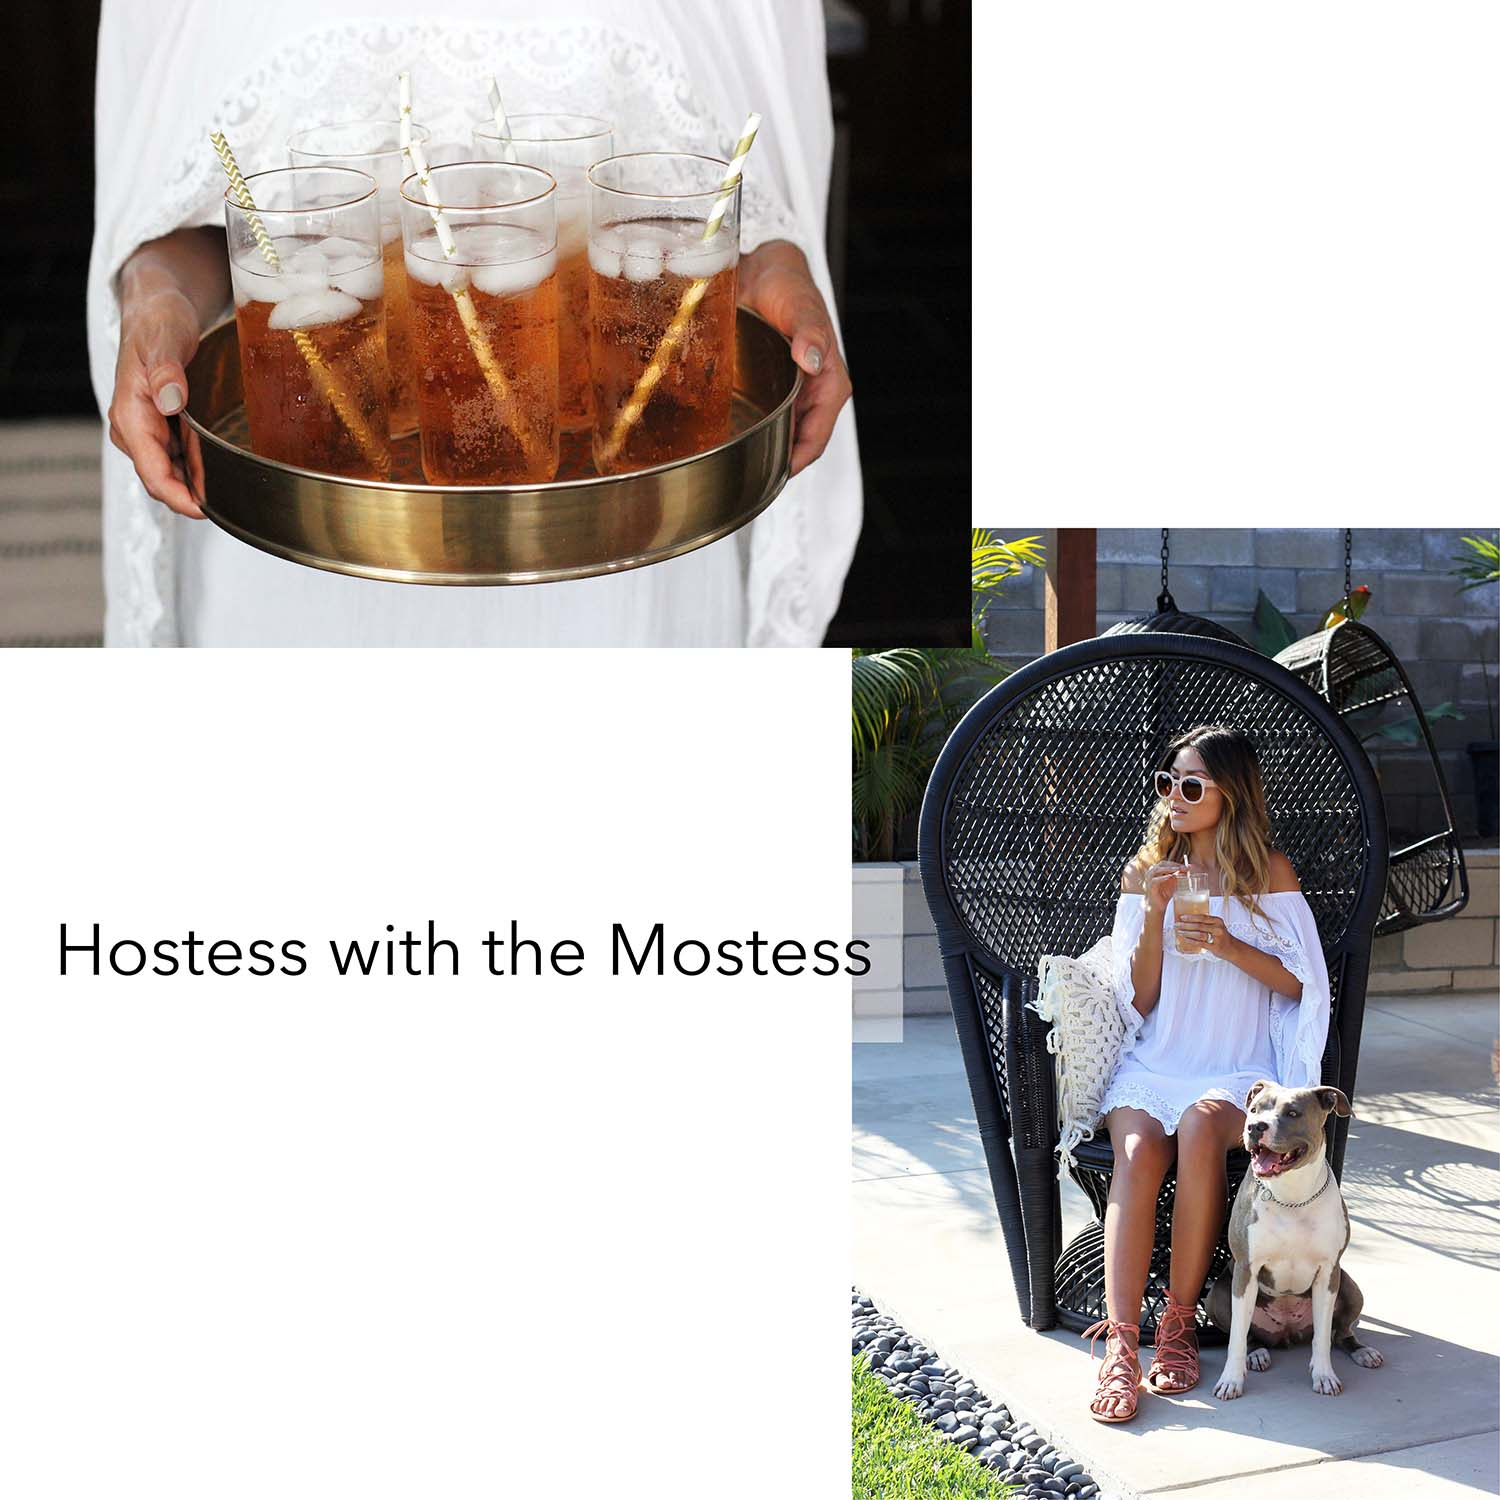 Hosting Tips for a Successful Party, hosting tips, backyard bbq, hostess with the mostess, house parties, bbq parties, get togethers, summer party, summer bbq, summer backyard parties, tips, host, hosting, home, backyard, cocktails, summer, melrodstyle, hm, h&m, hm home, pillows, decor, home decor, home inspiration